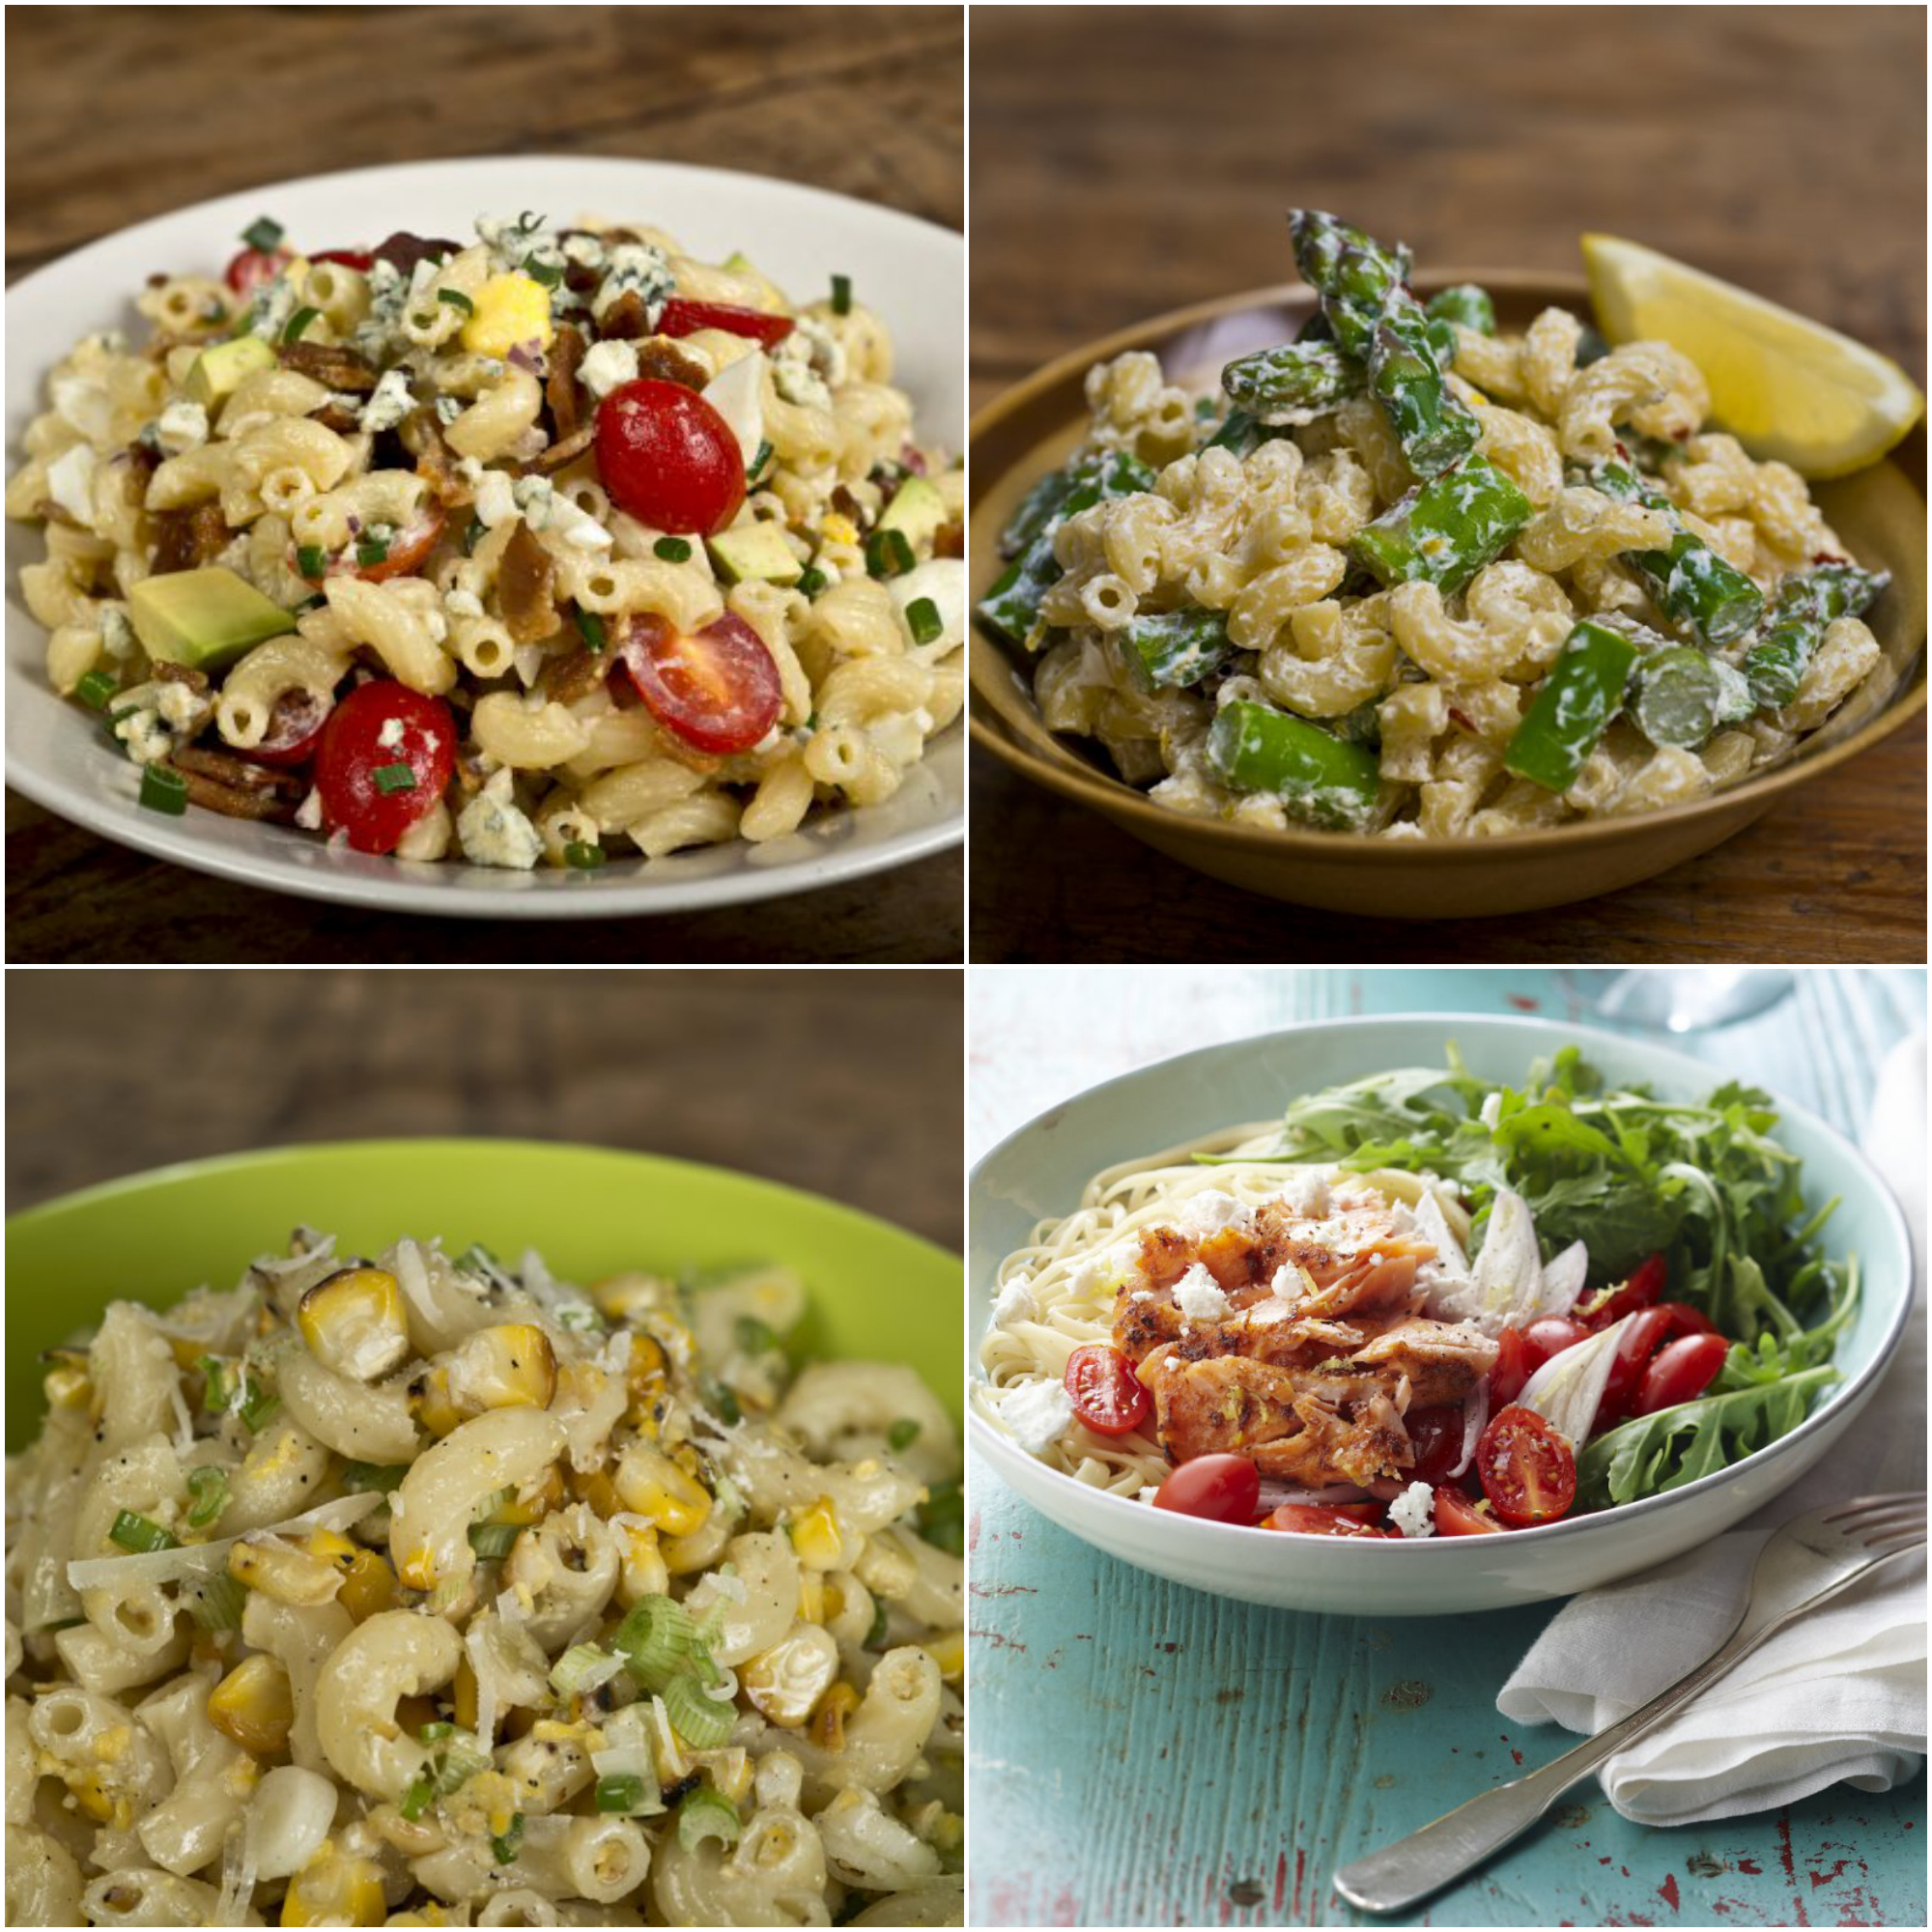 All Our Macaroni and Pasta Salad Recipes In One Handy Place! - Food ...